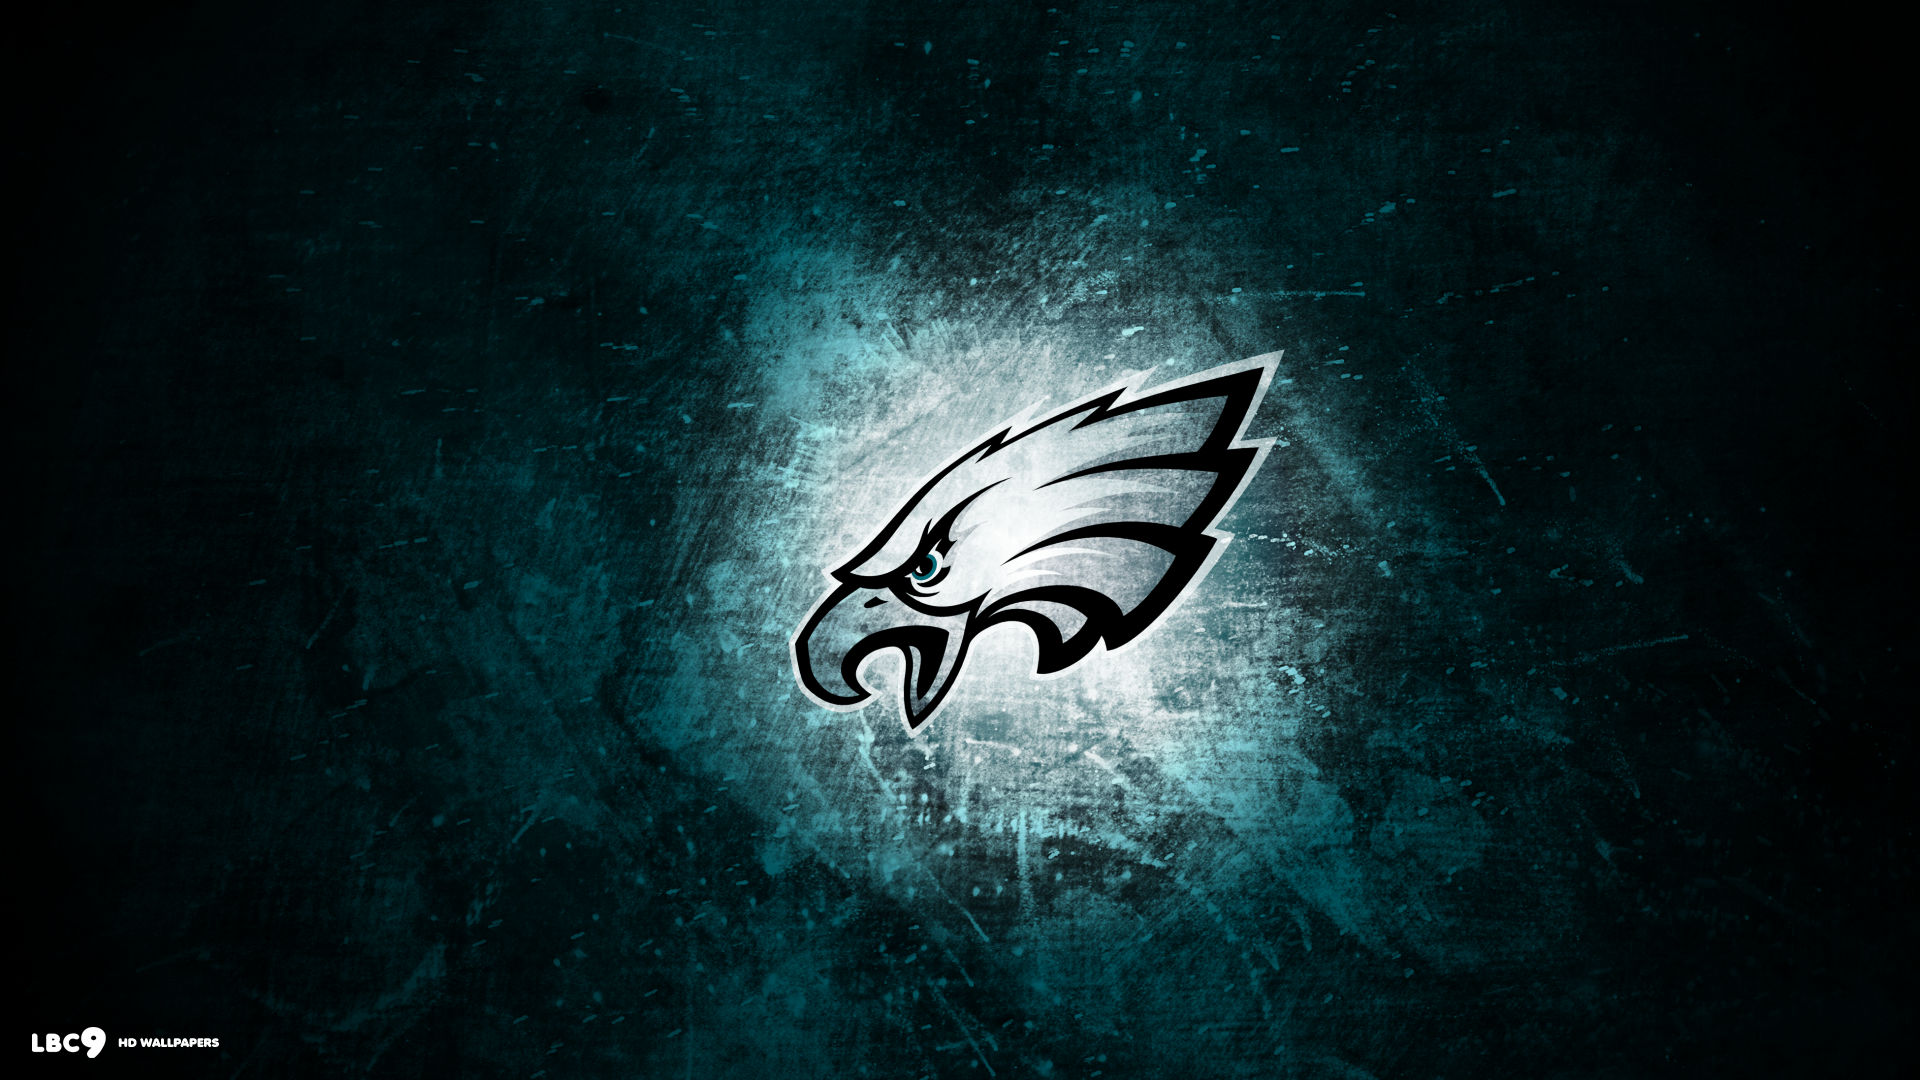 47] Eagles HD Wallpaper on WallpaperSafari 1920x1080